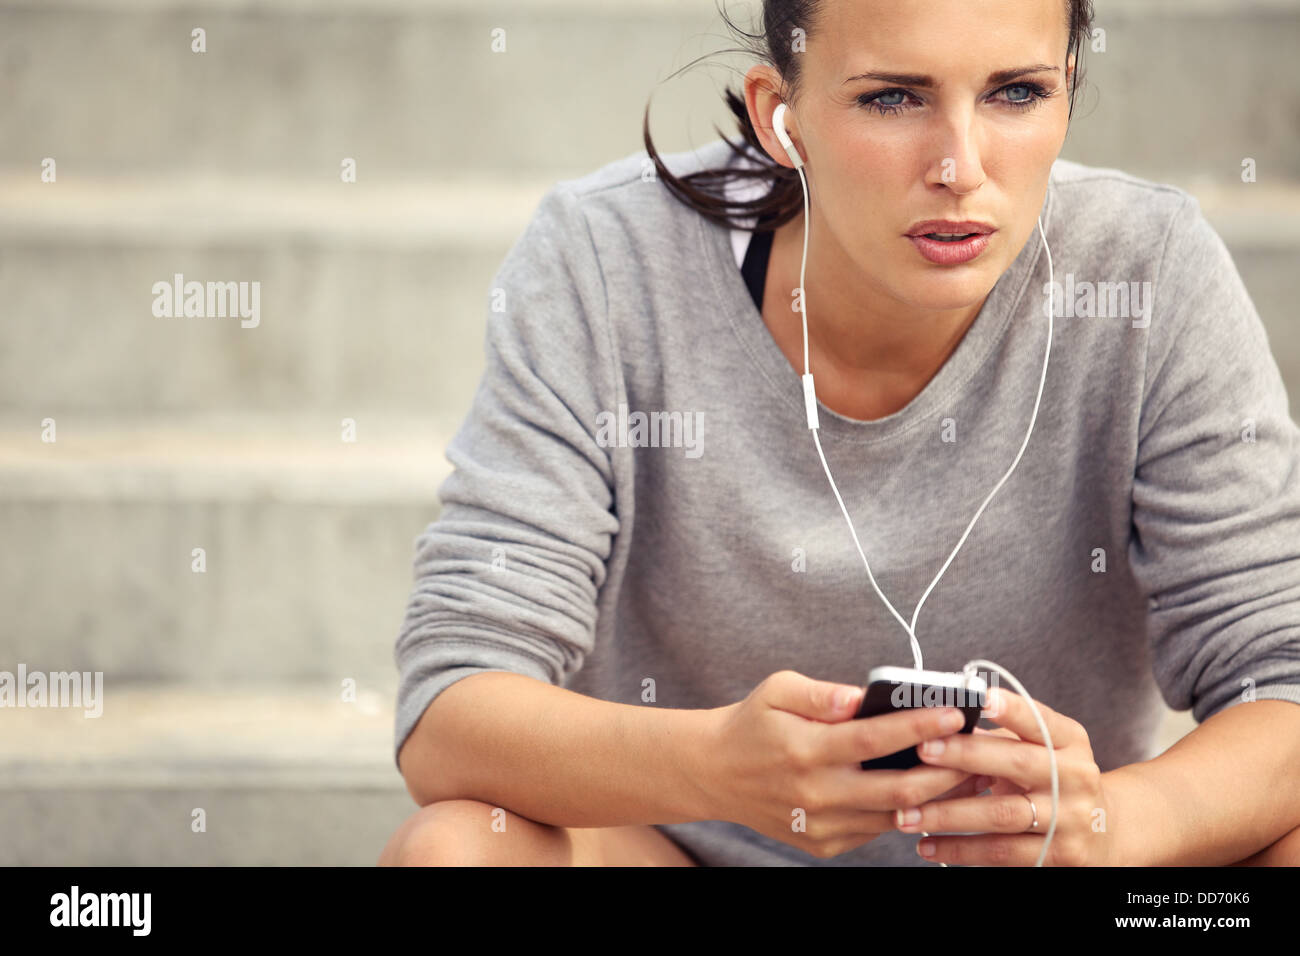 Serious female athlete listening to mp3 music during her break - Stock Image